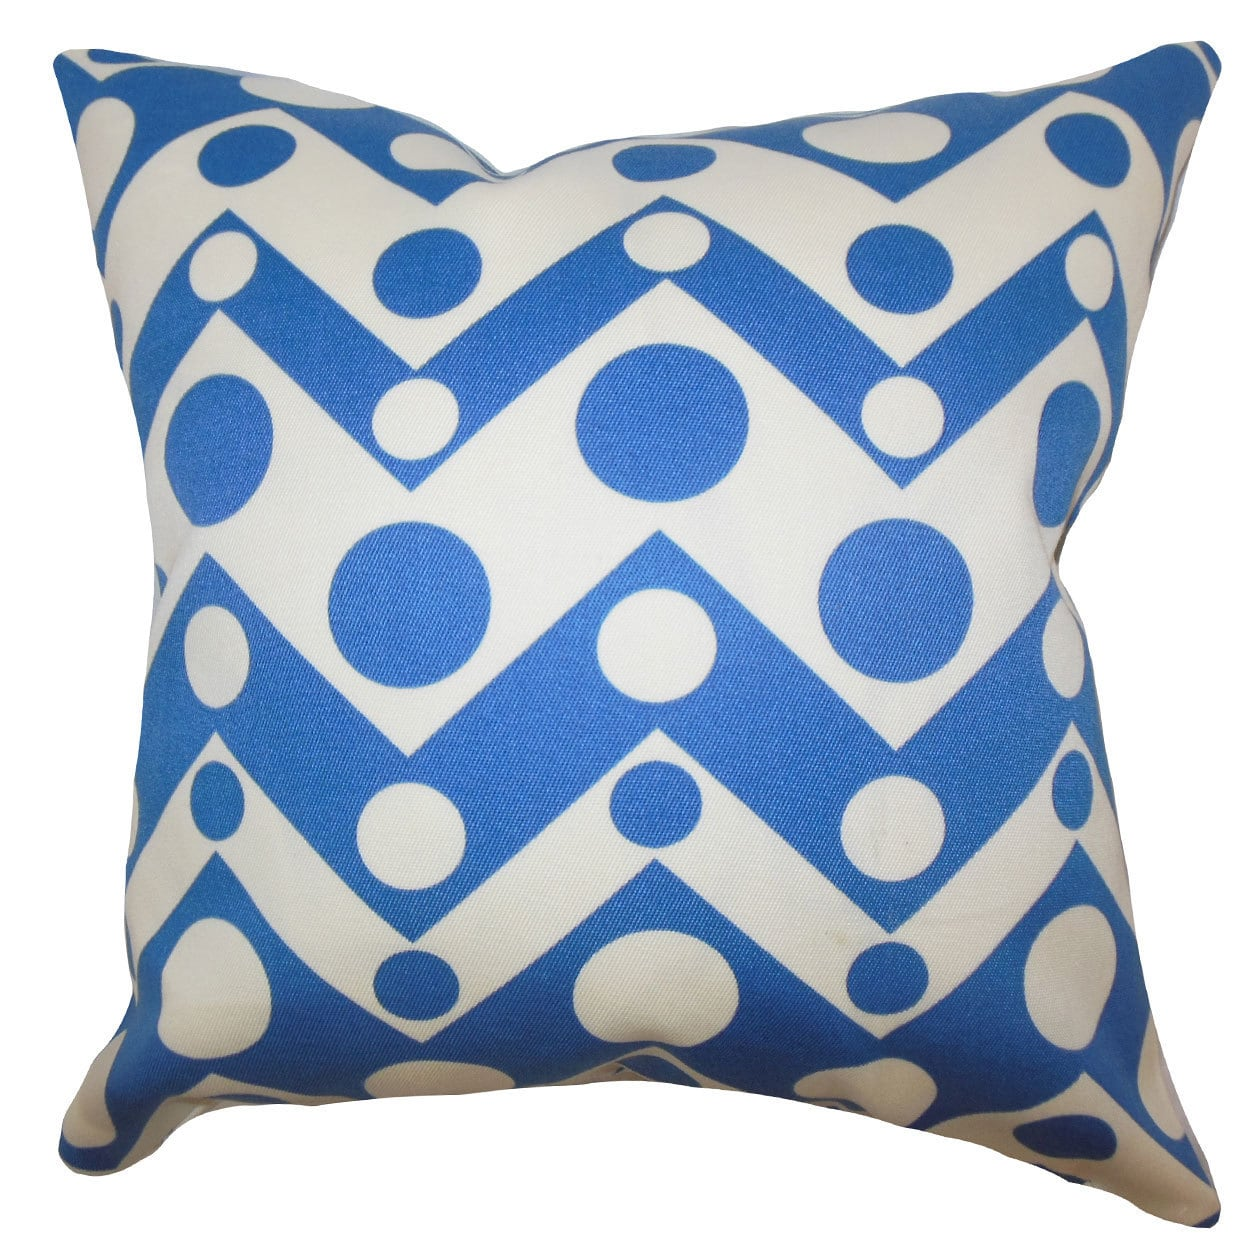 "The Pillow Collection Quenby Geometric 24"" x 24"" Down Feather Throw Pillow Blue"